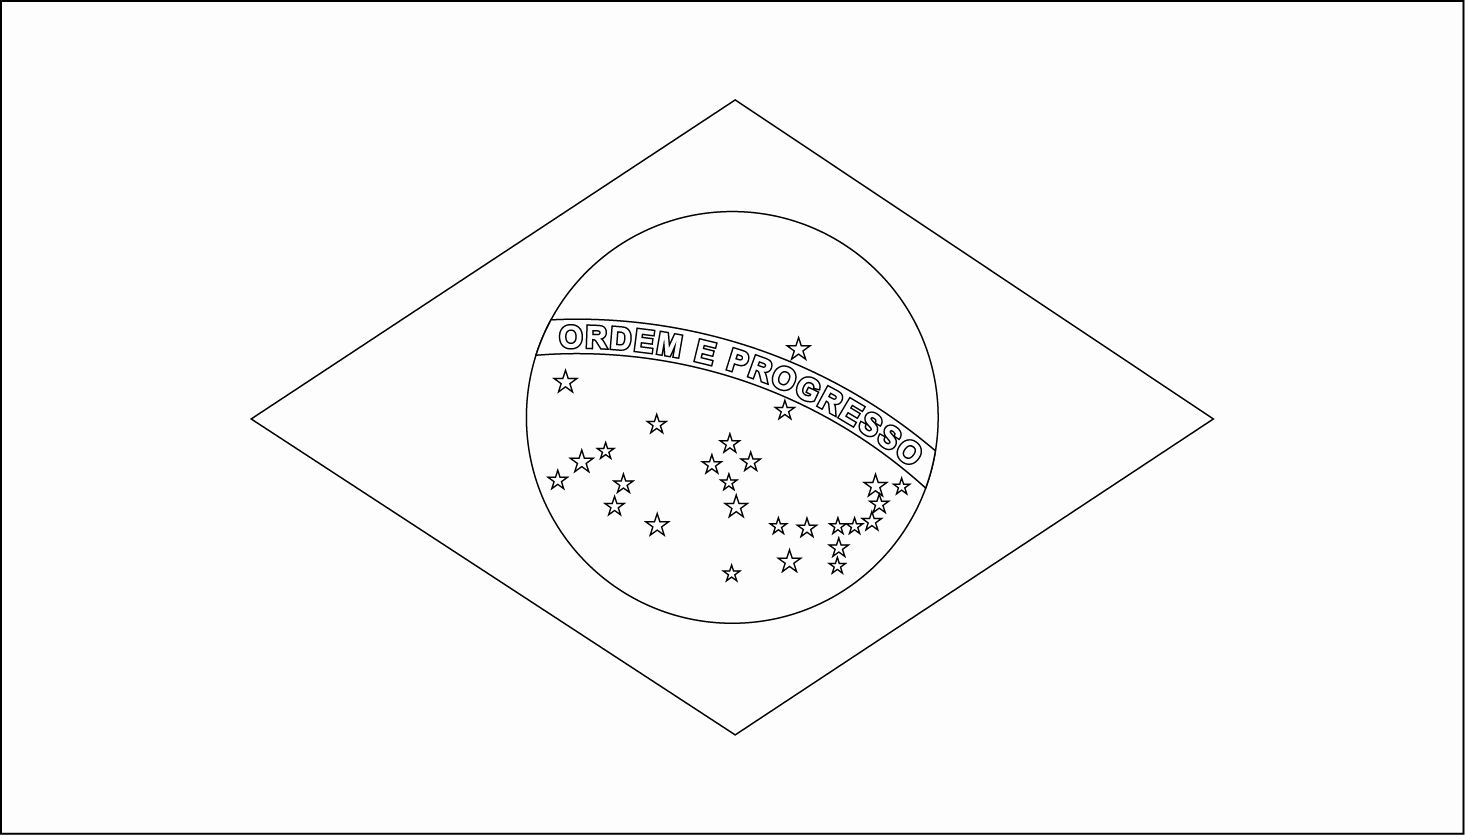 Flag Of Brazil Coloring Page Luxury Printable Brazil Flag Coloring Worksheet Flag Coloring Pages Coloring Pages Coloring Pages Inspirational